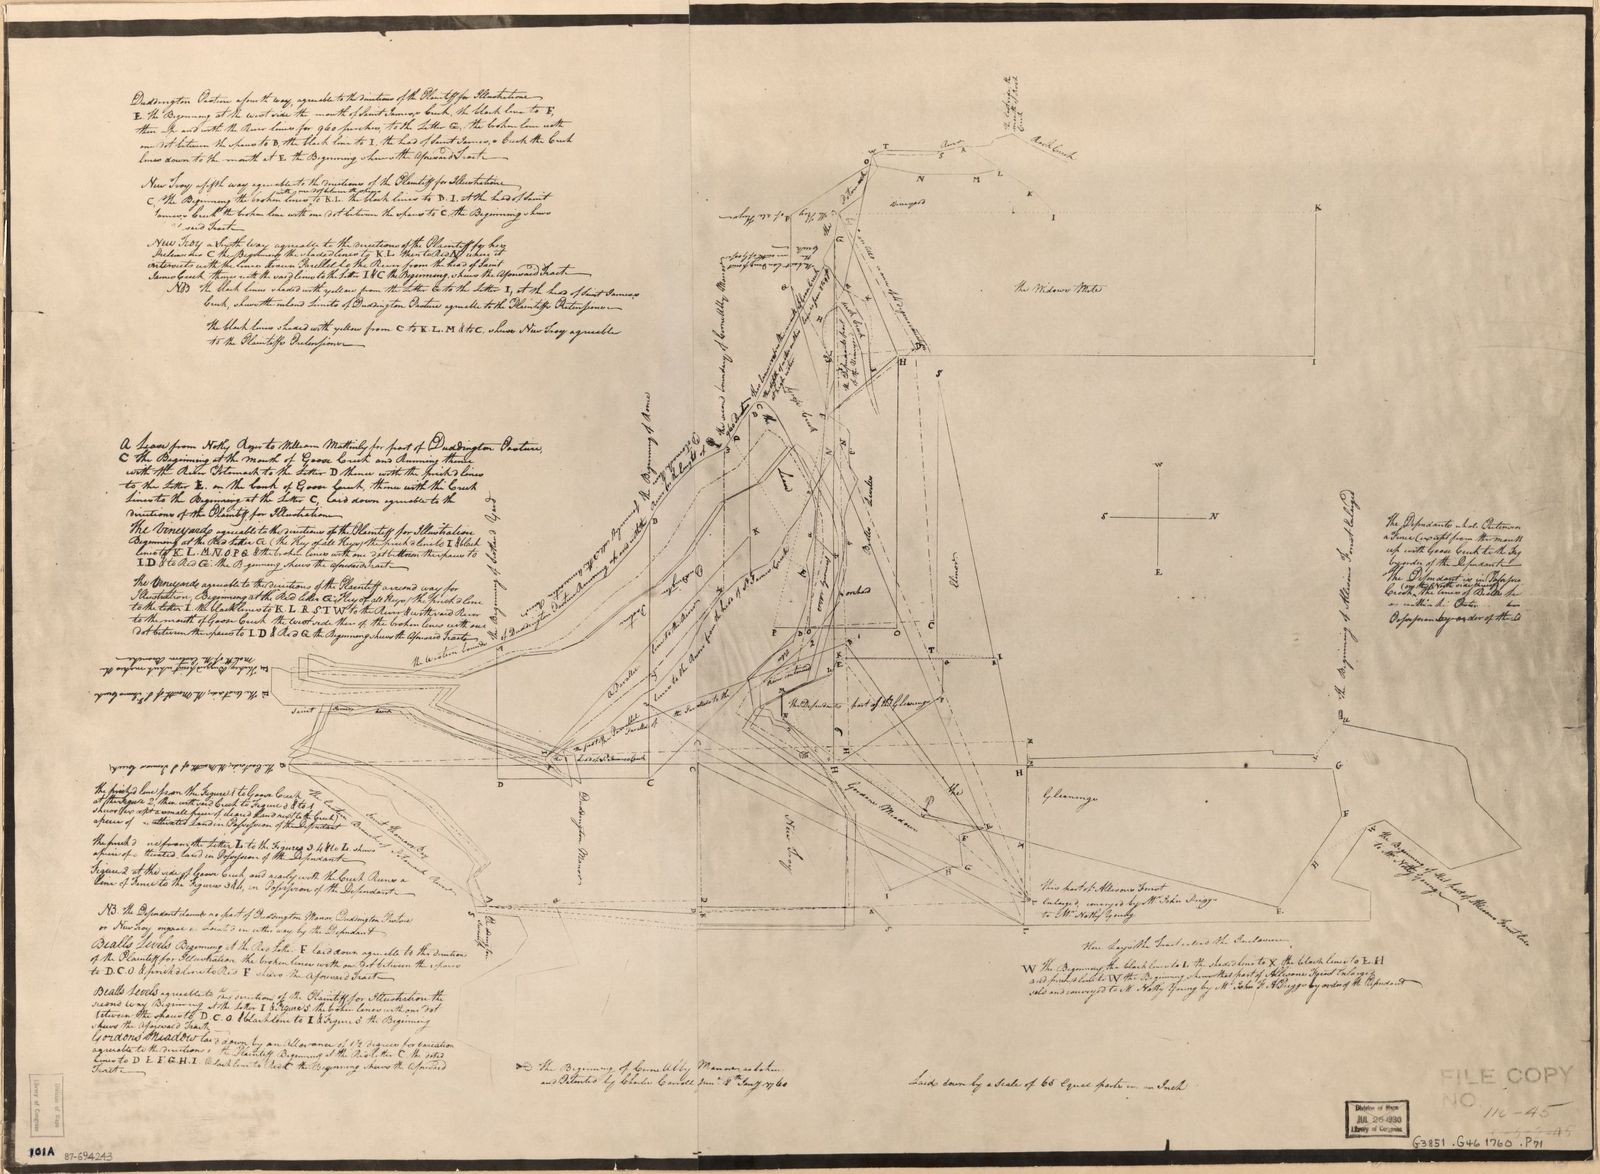 [Property survey of that part of Prince Georges County, Maryland, later to become central Washington D.C.].